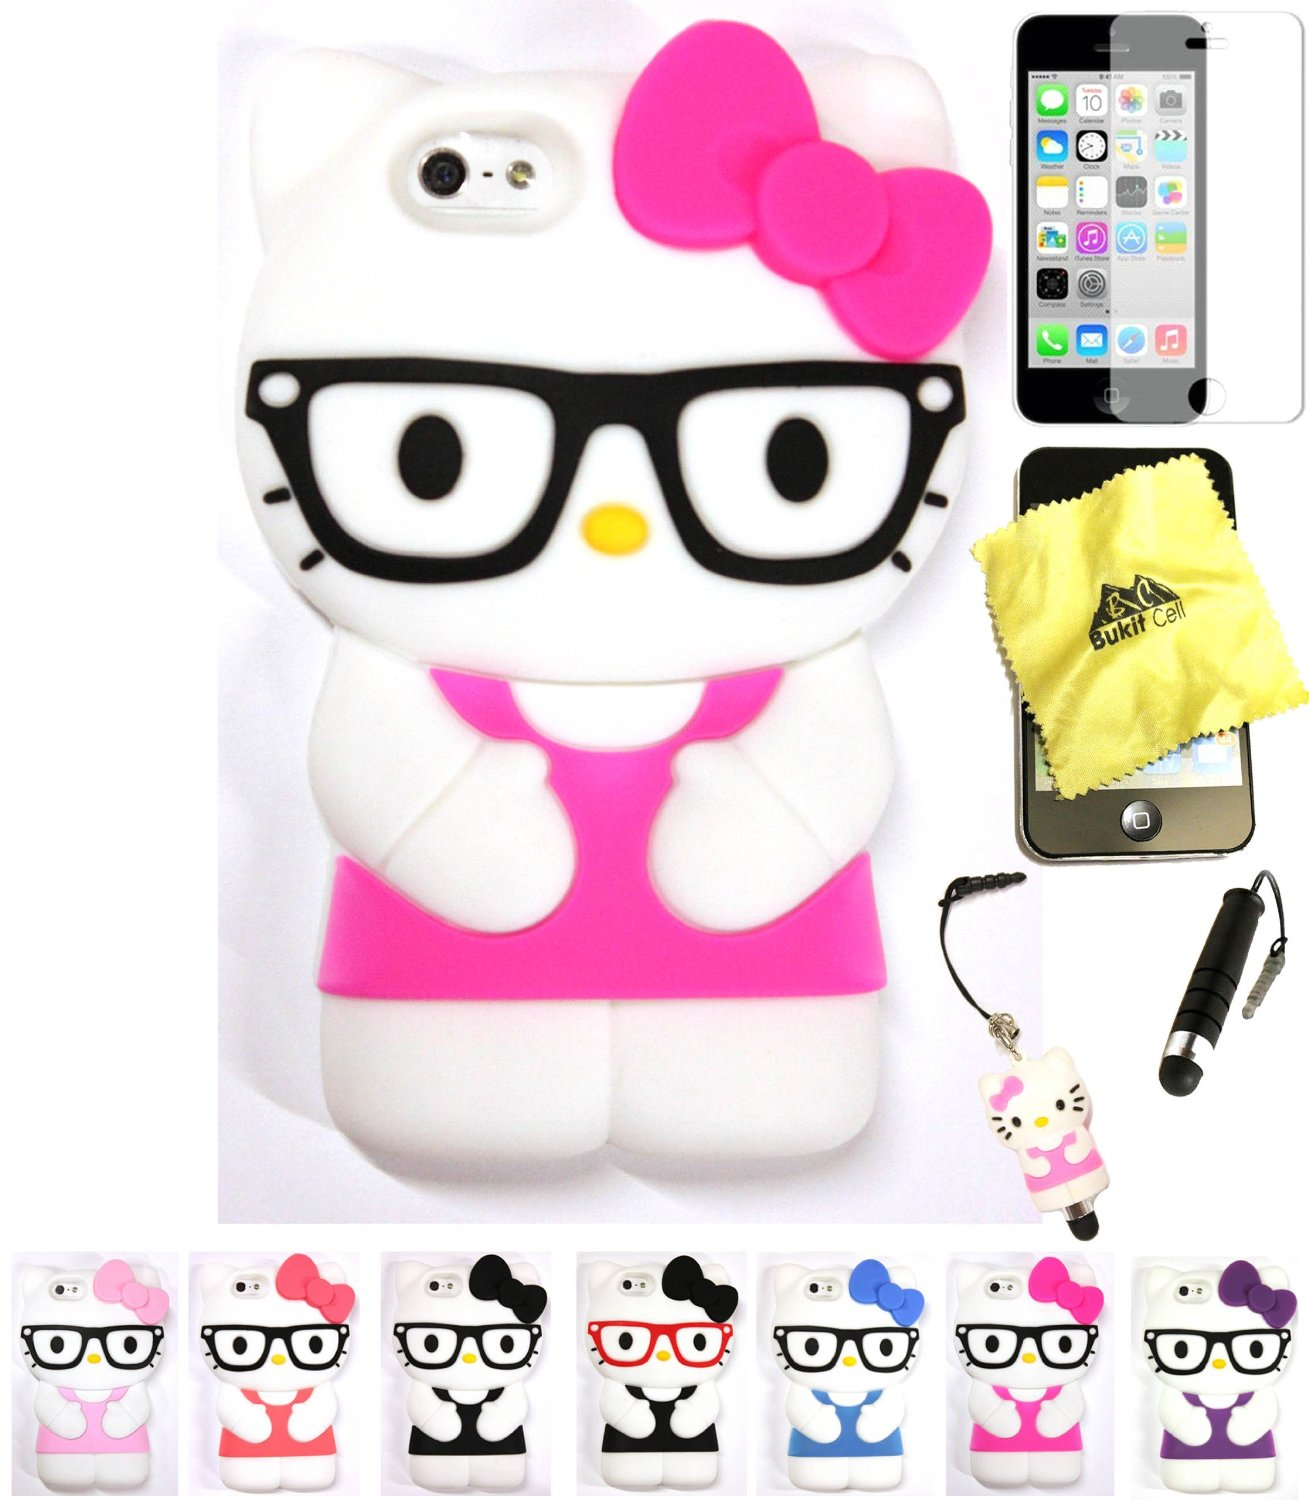 Bukit Cell Hello Kitty Case HOT PINK 3D Hello Kitty (with Glasses) Silicone Case for IPHONE 5C + Cleaning Cloth + Hello Kitty Figure Stylus Touch Pen + Screen Protector + METALLIC Stylus Touch Pen